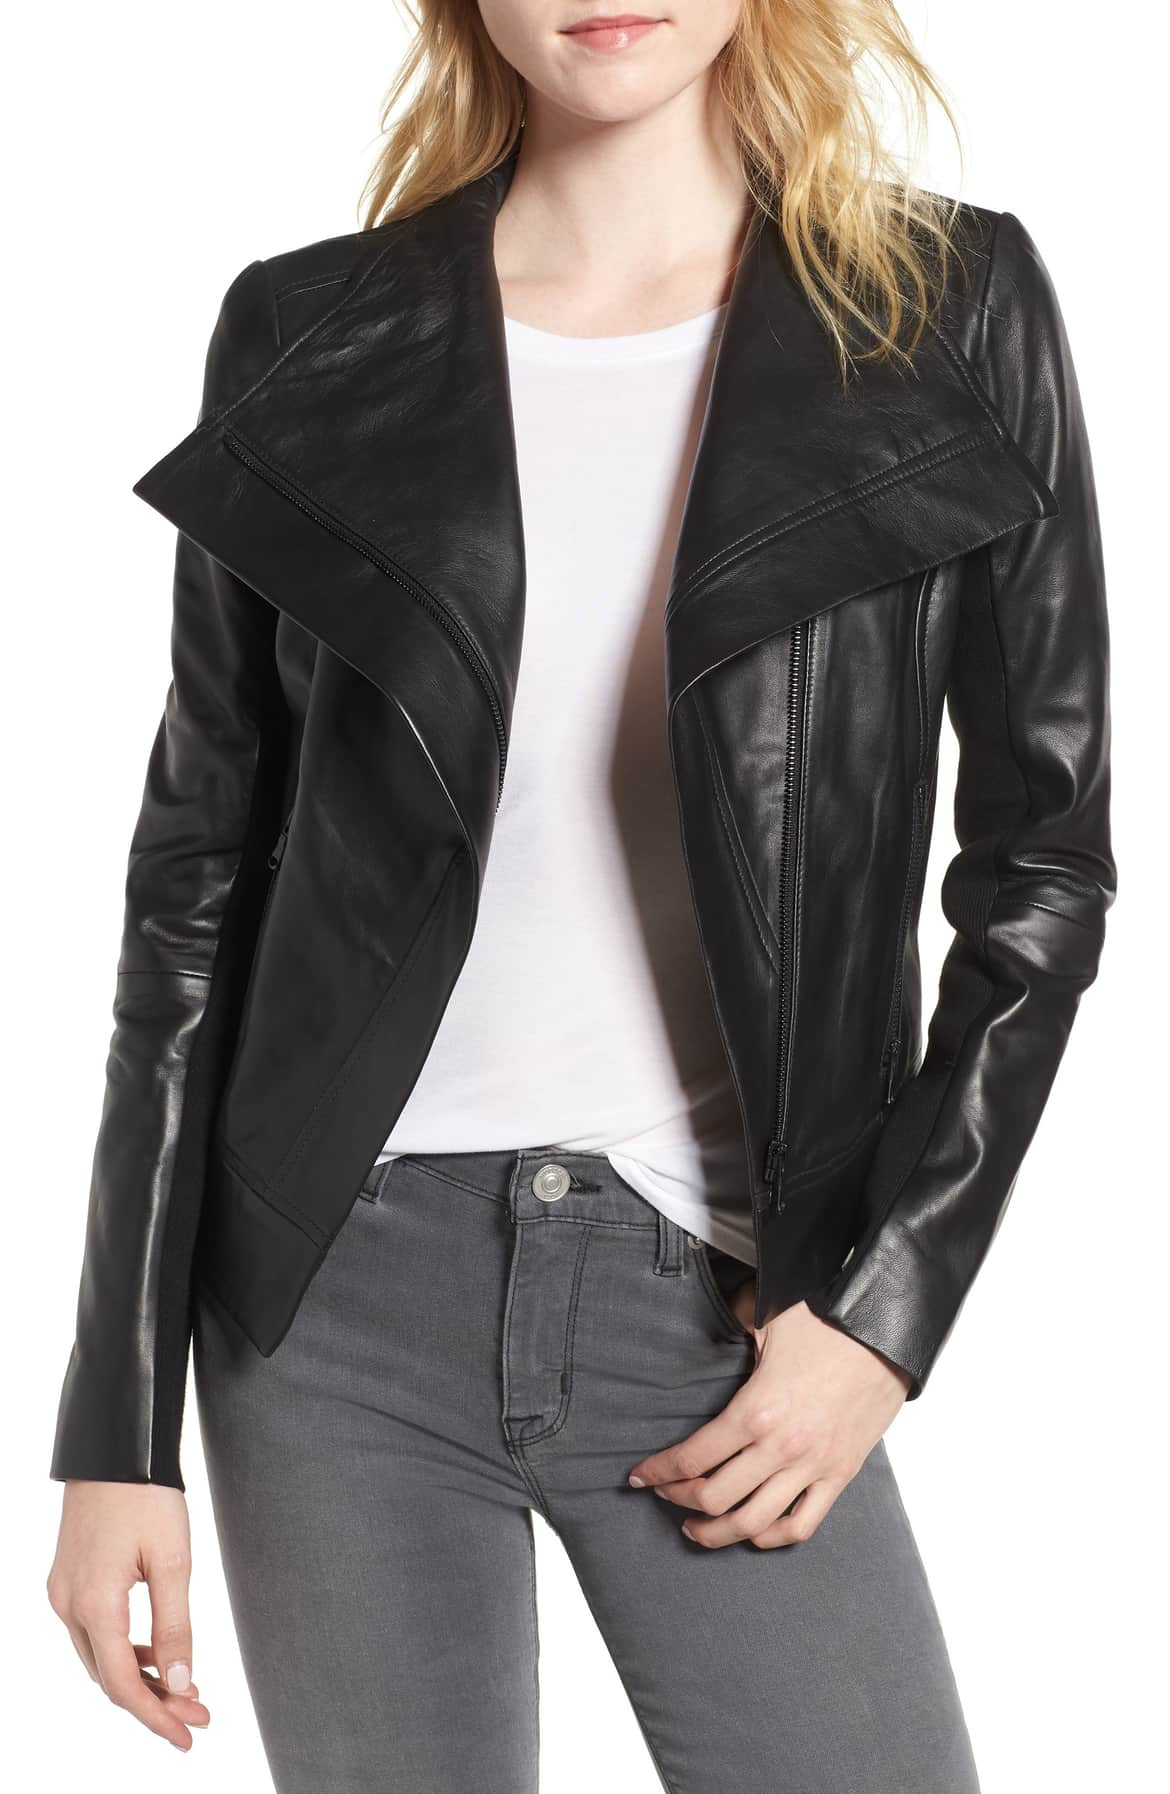 Shop This Lambskin Leather Jacket Over 100 At Nordstrom